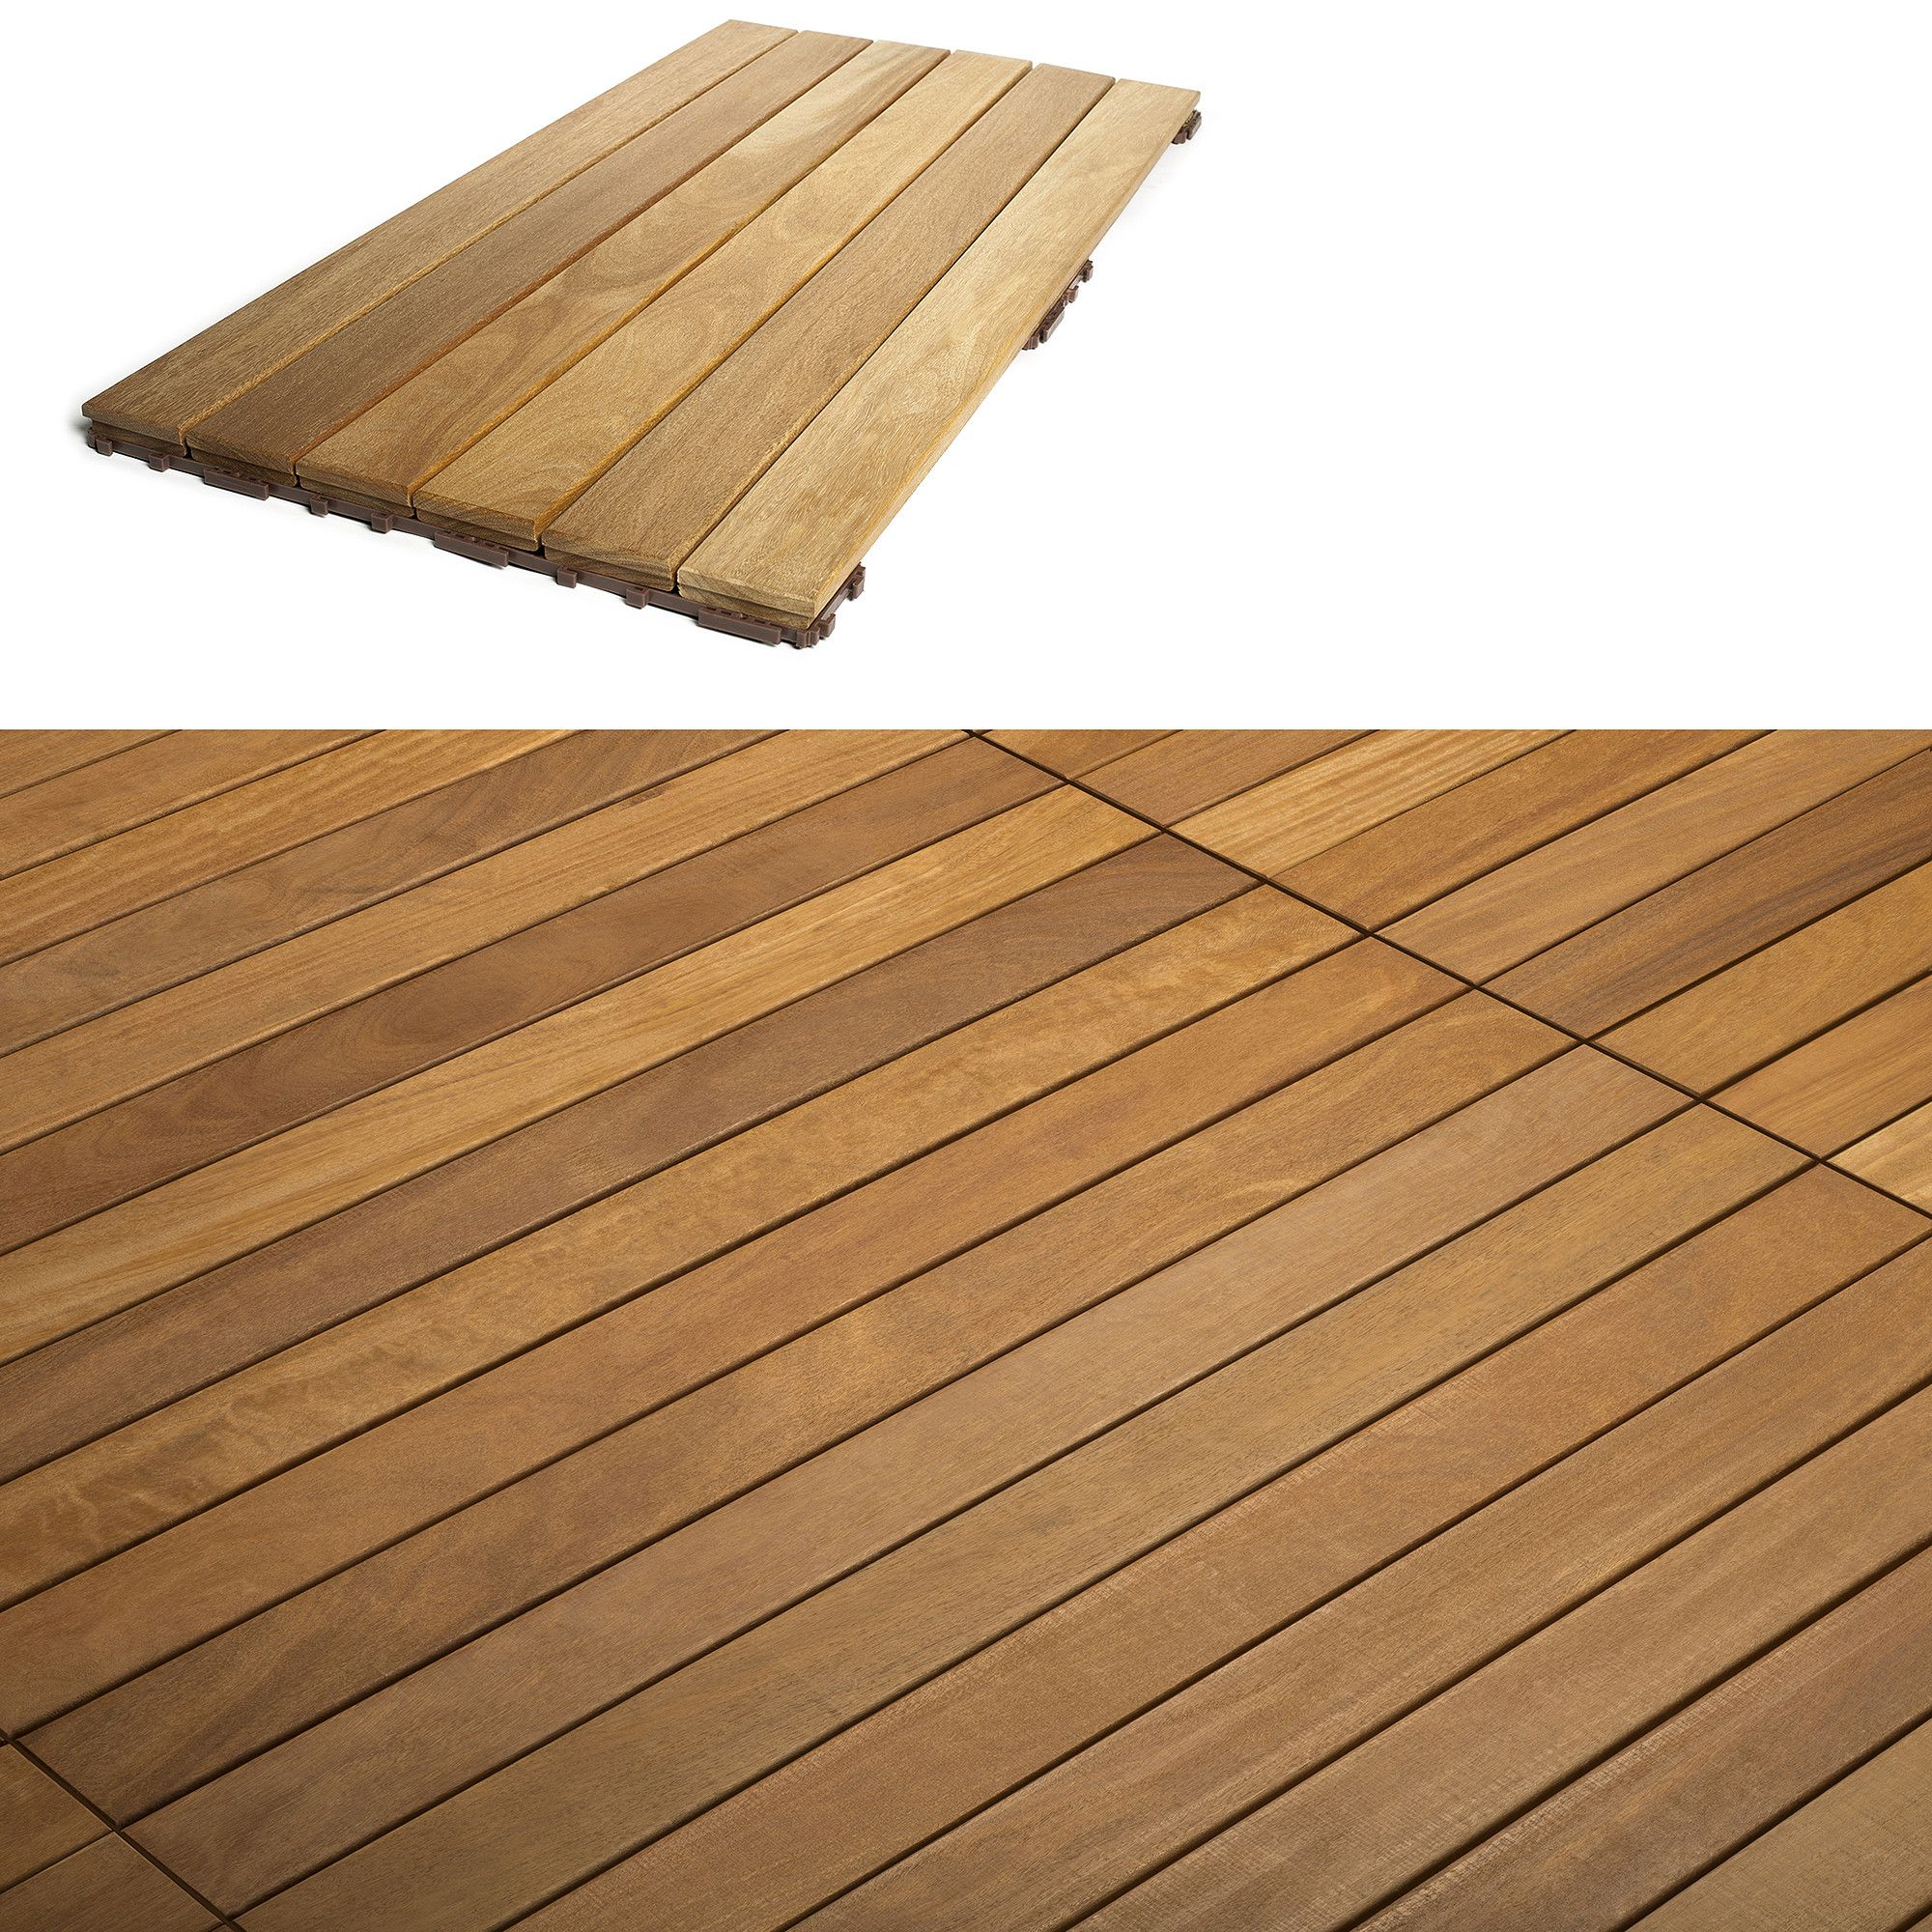 Snapping deck tiles goes over existing flooring or grass and are snapping deck tiles goes over existing flooring or grass and are easily removable when you move or just want a change home is where dailygadgetfo Images